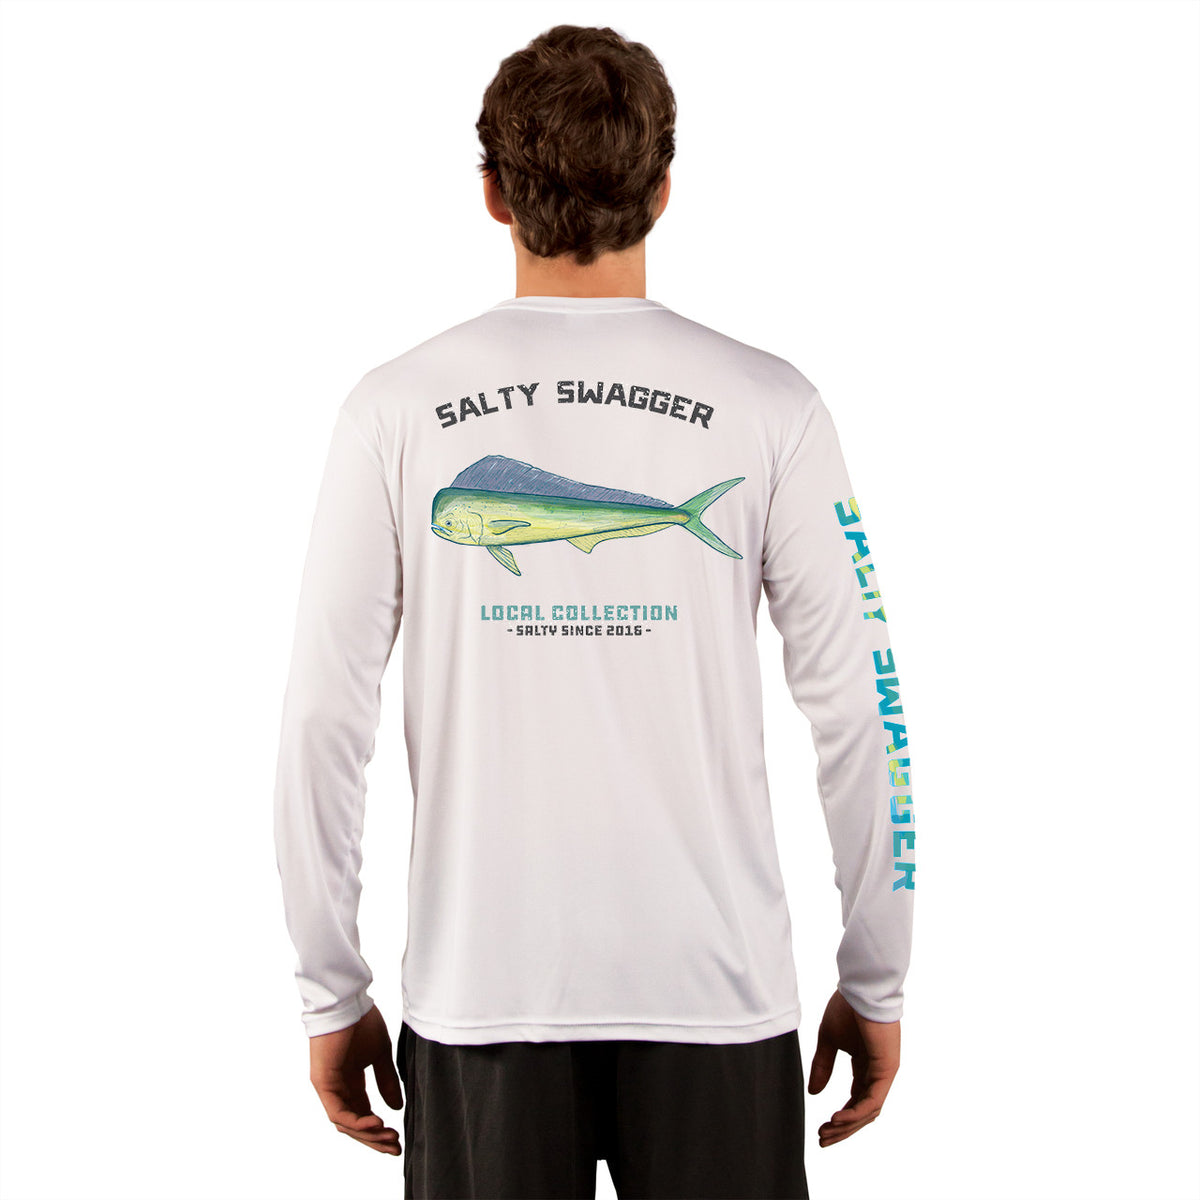 Mahi Mahi Performance Shirt